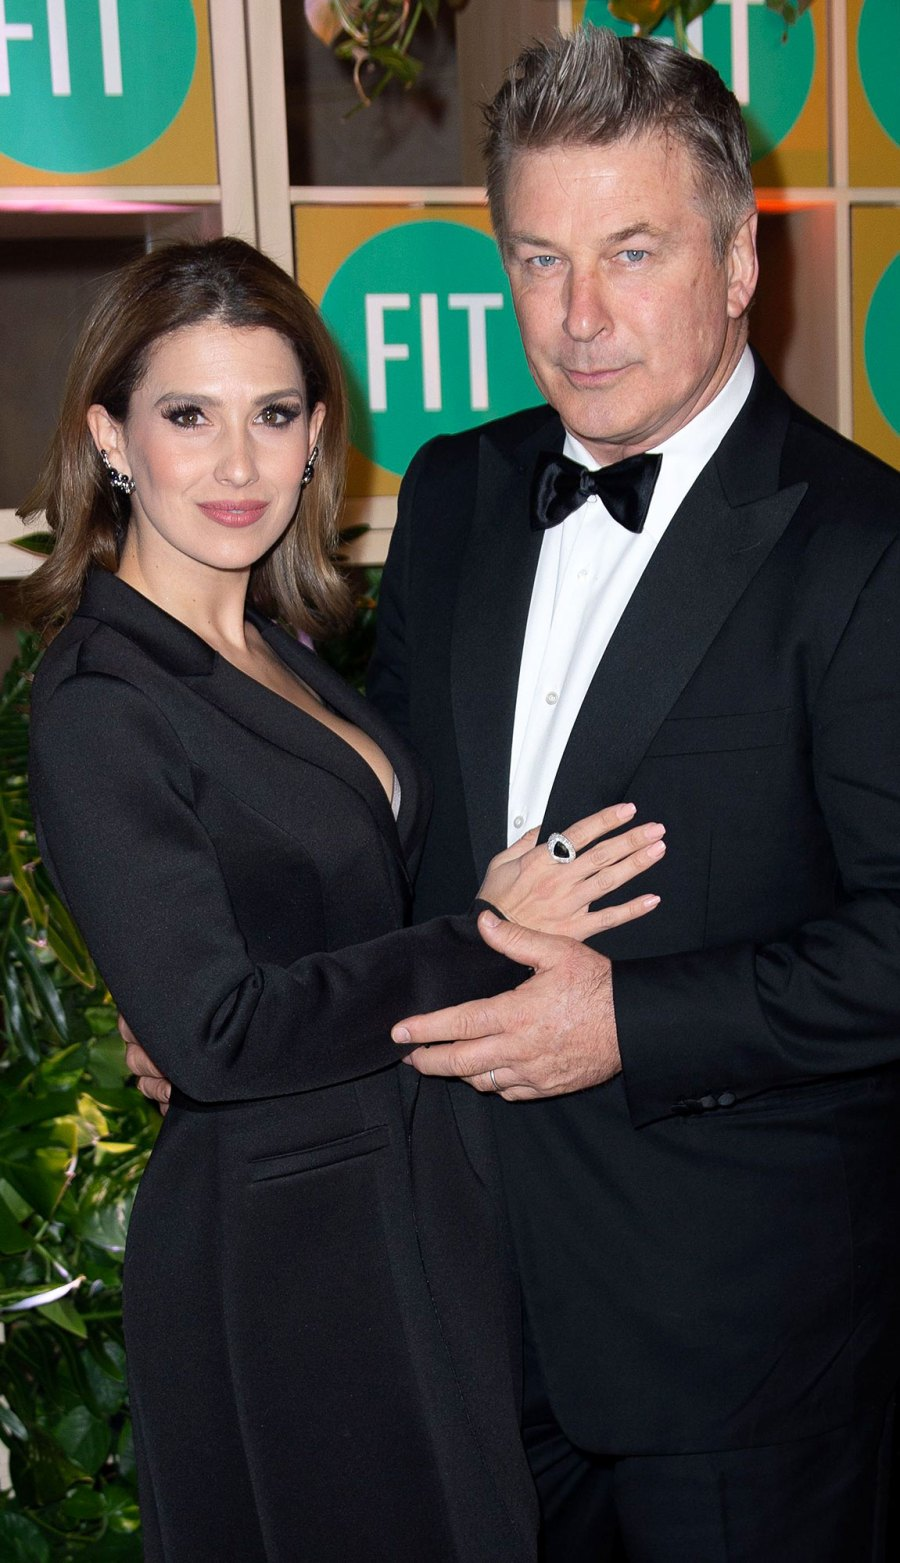 Building Her Boundaries Hilaria Baldwin Discusses Spanish Accent and Heritage in NYT Interview